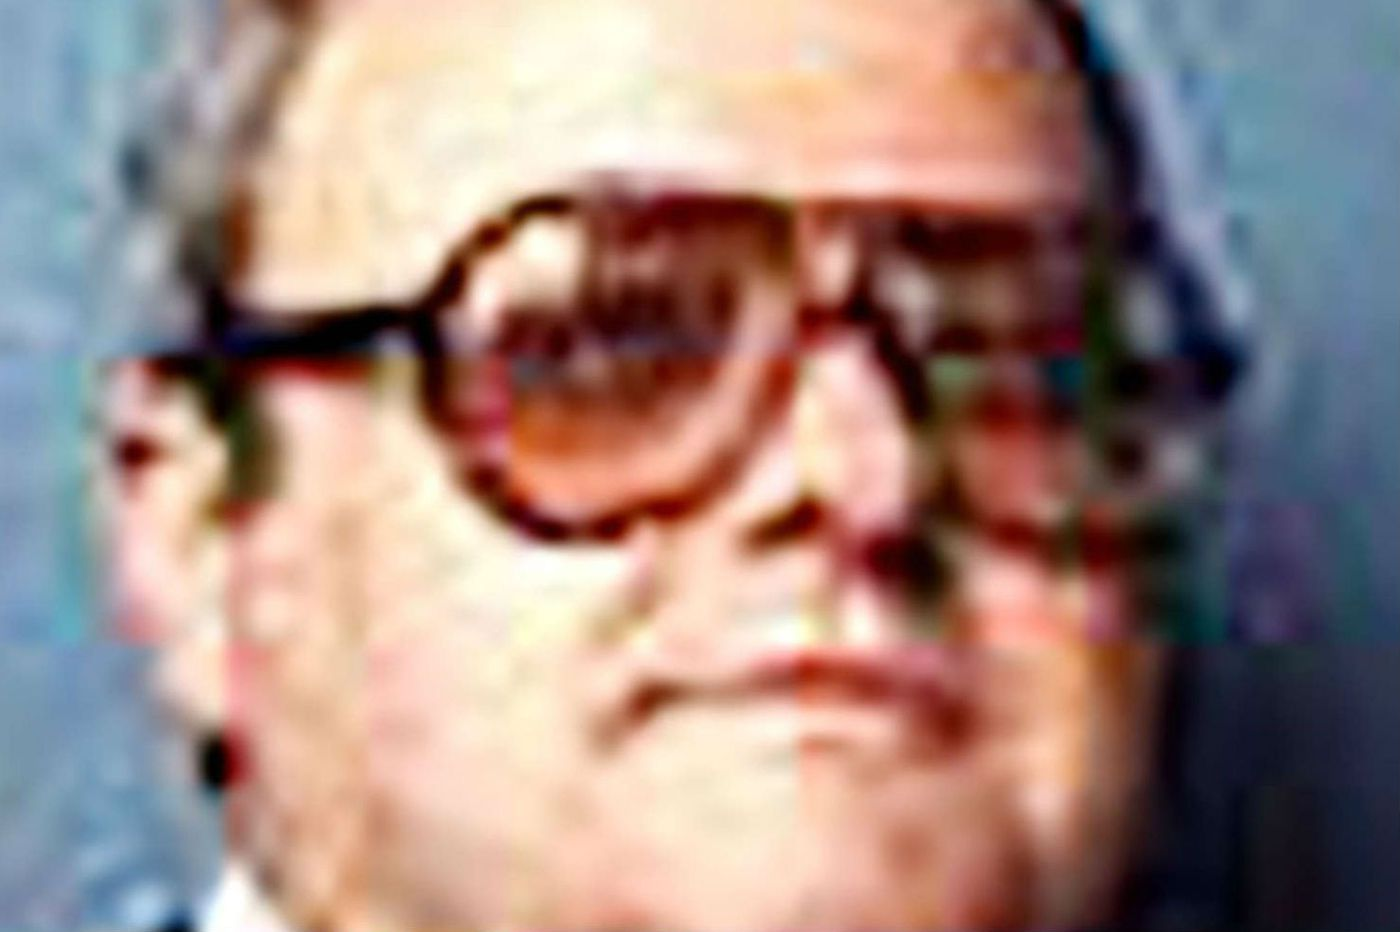 Joel Samuel Moldovsky, 76, noted defense lawyer